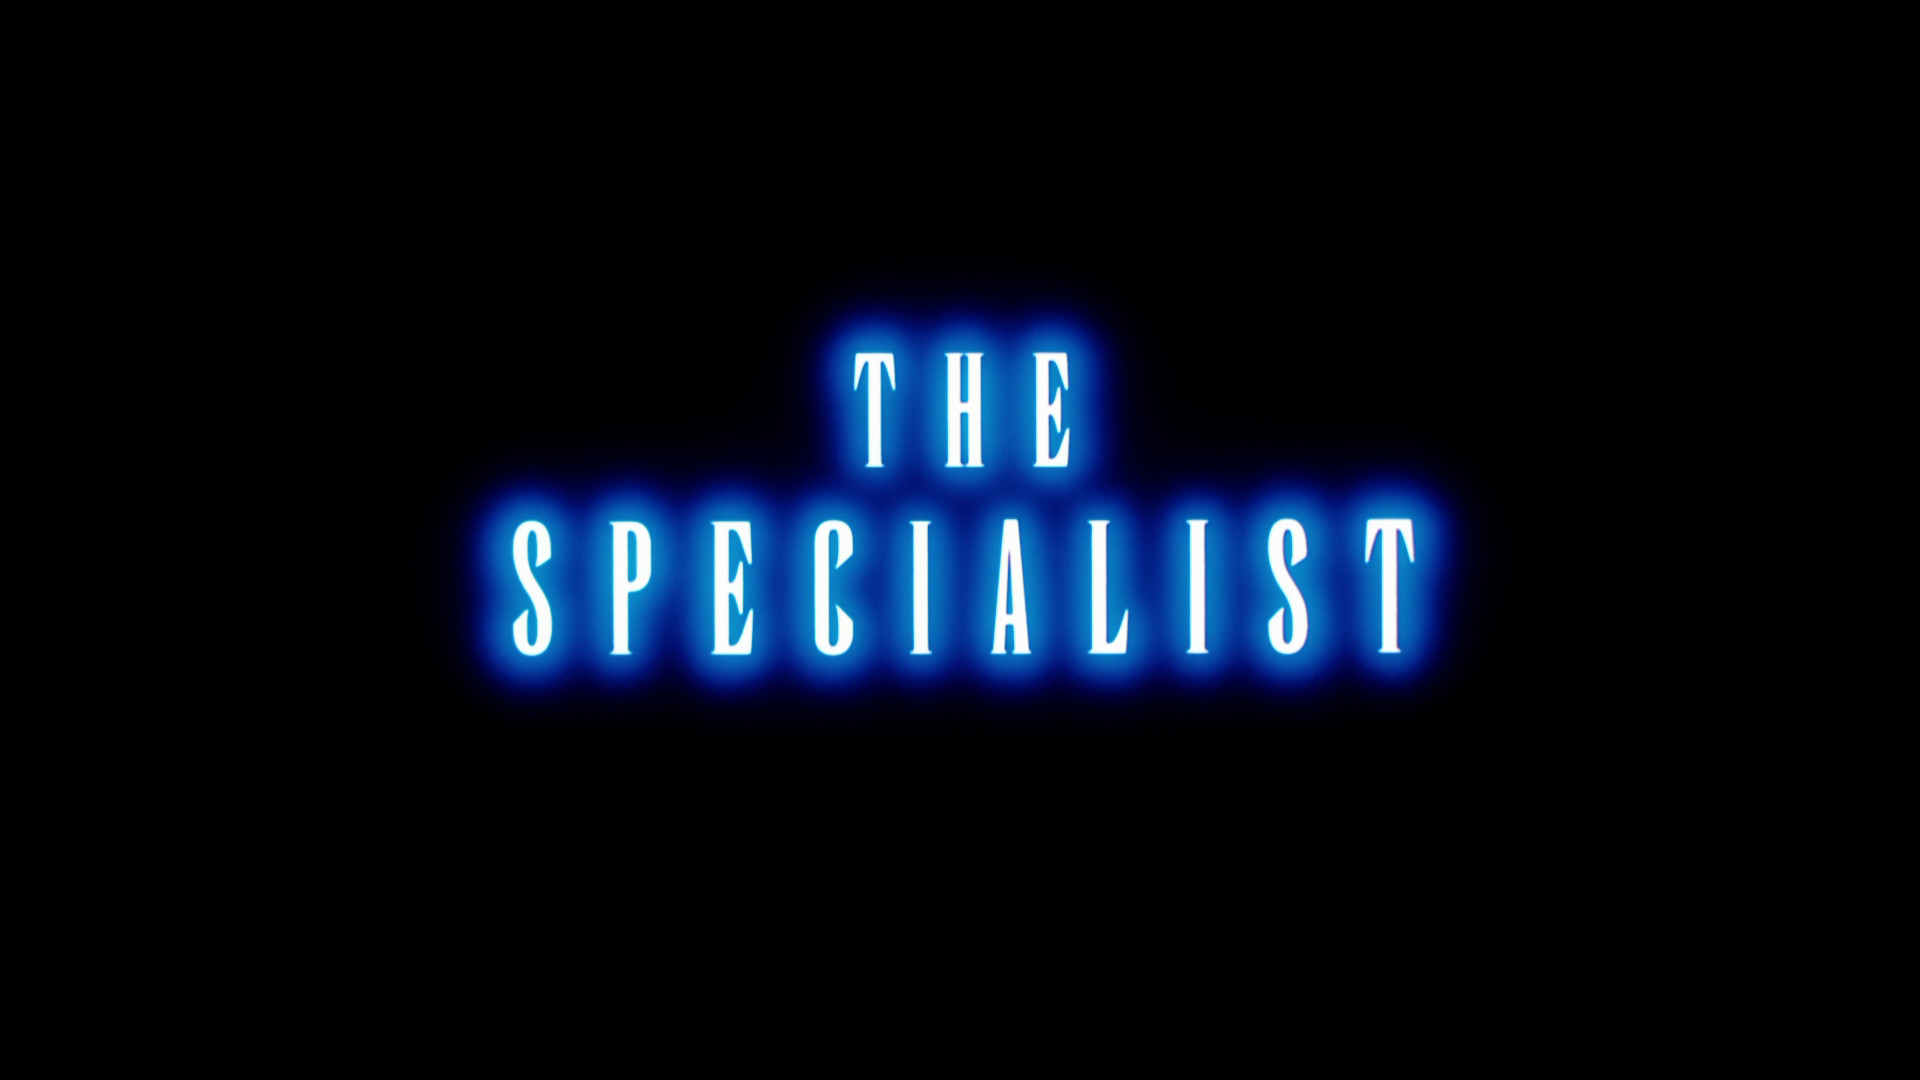 Res: 1920x1080, THE MOVIE ... The Specialist Movie. The Specialist Wallpaper